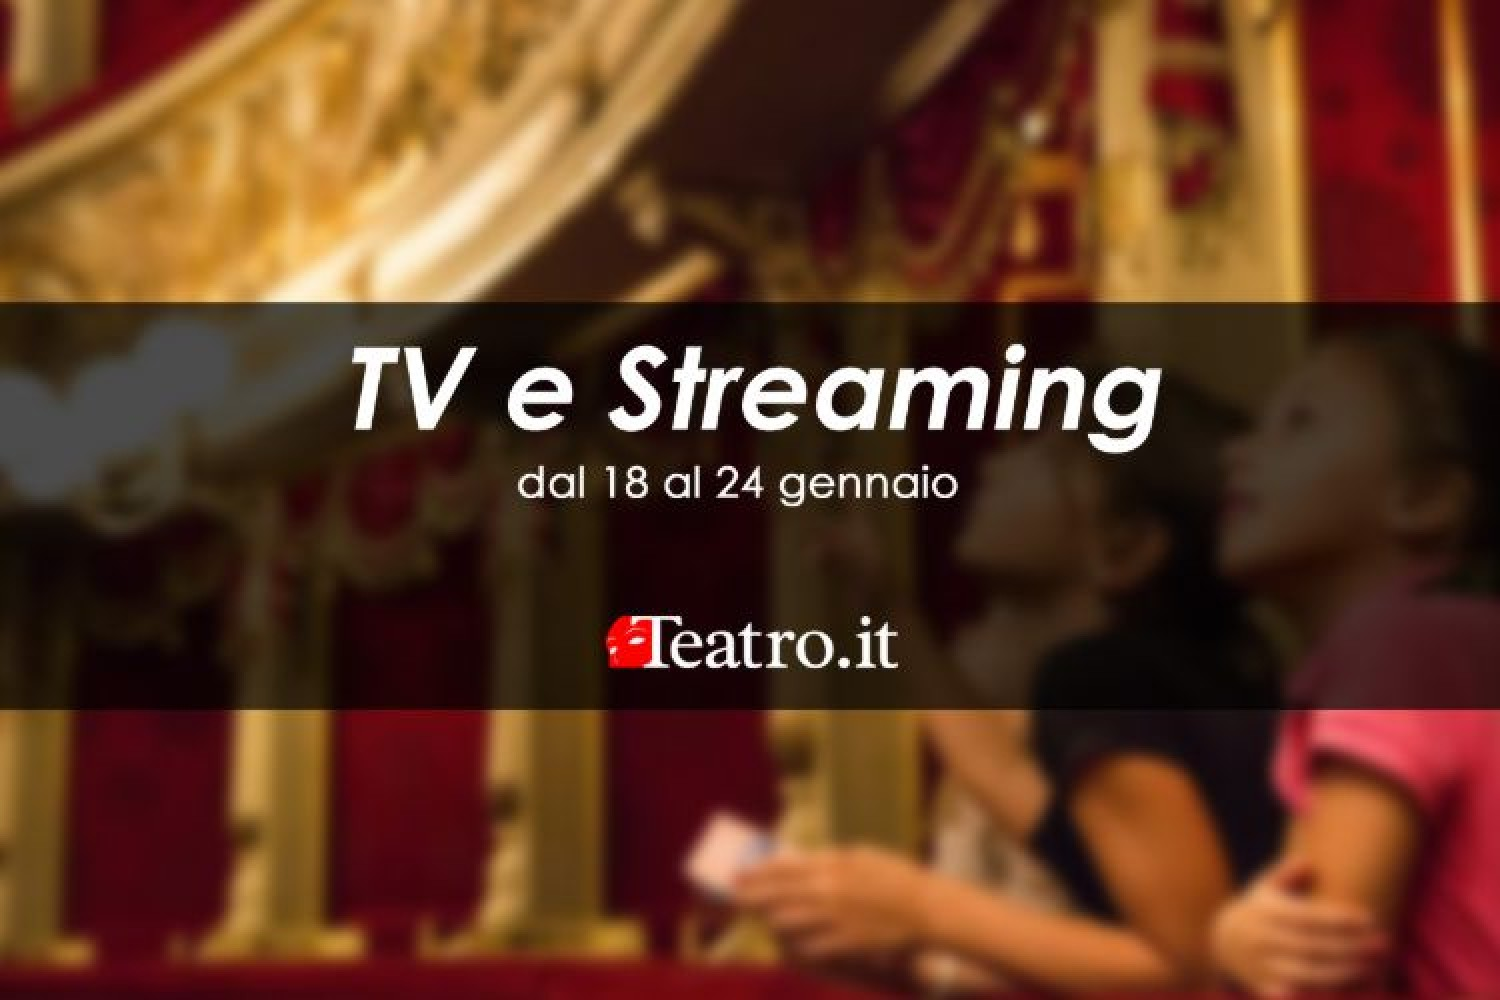 TV e Streaming: 18-24 gennaio